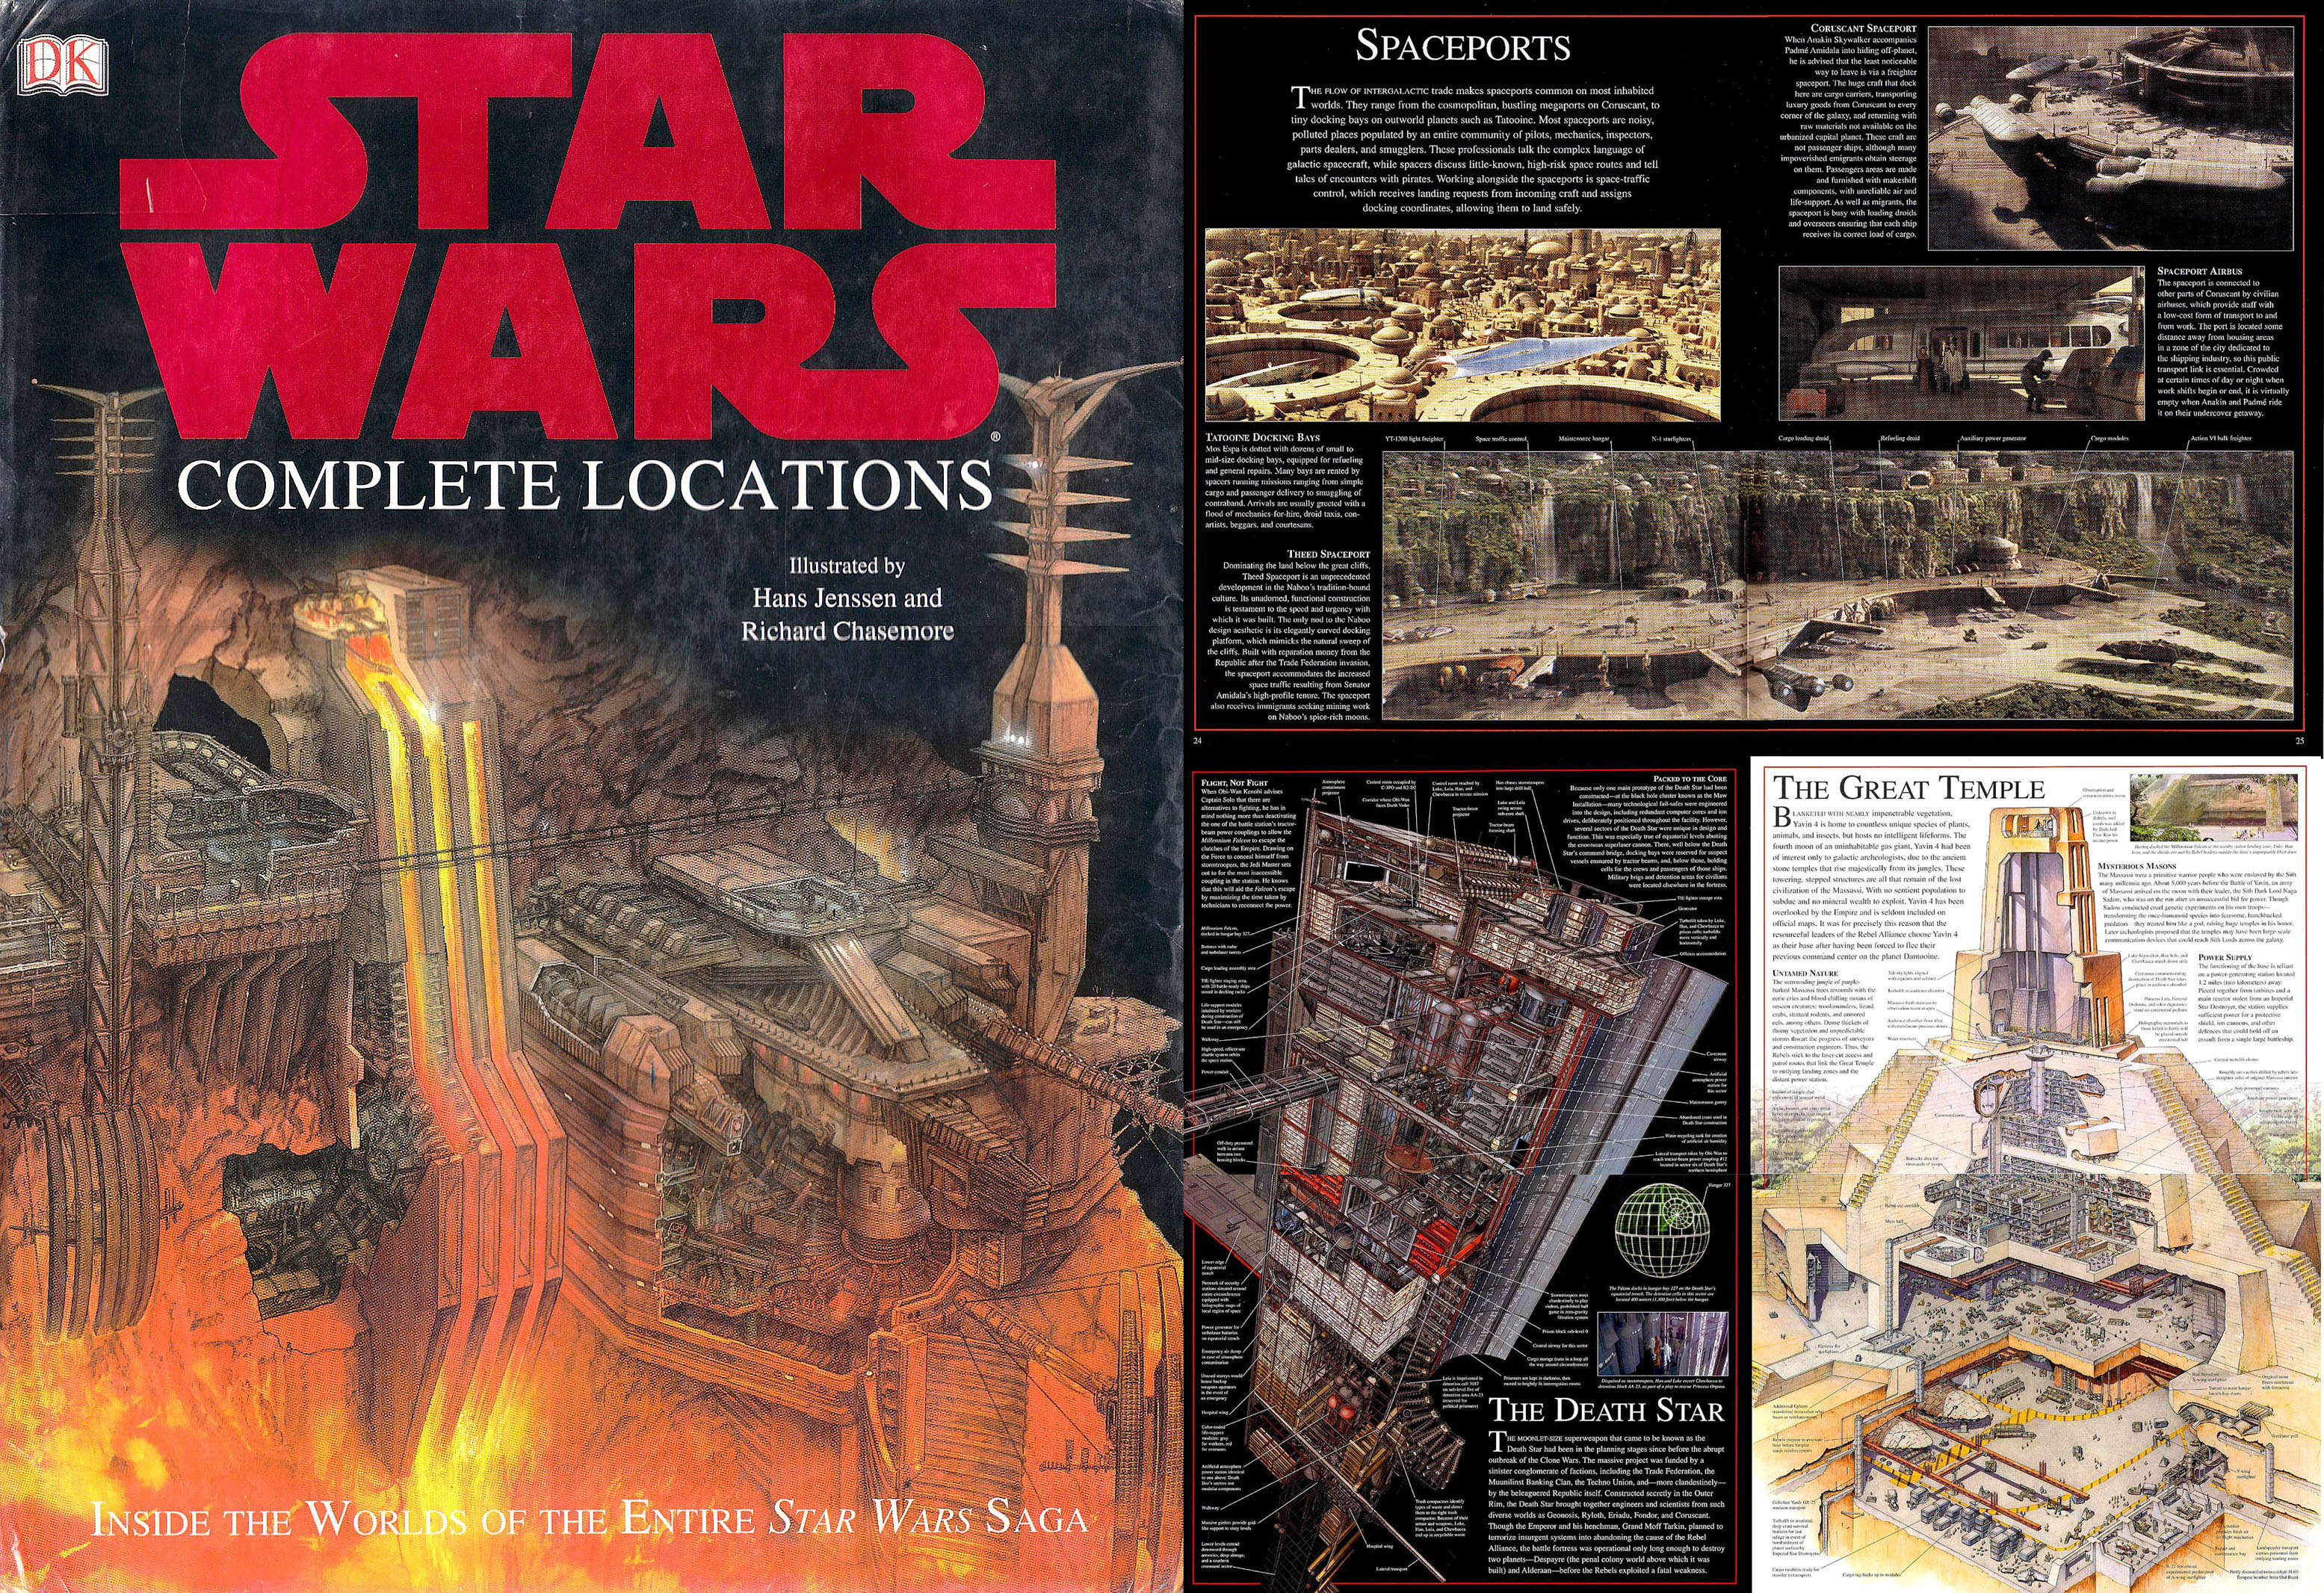 Star Wars - Complete Locations 2005.jpg